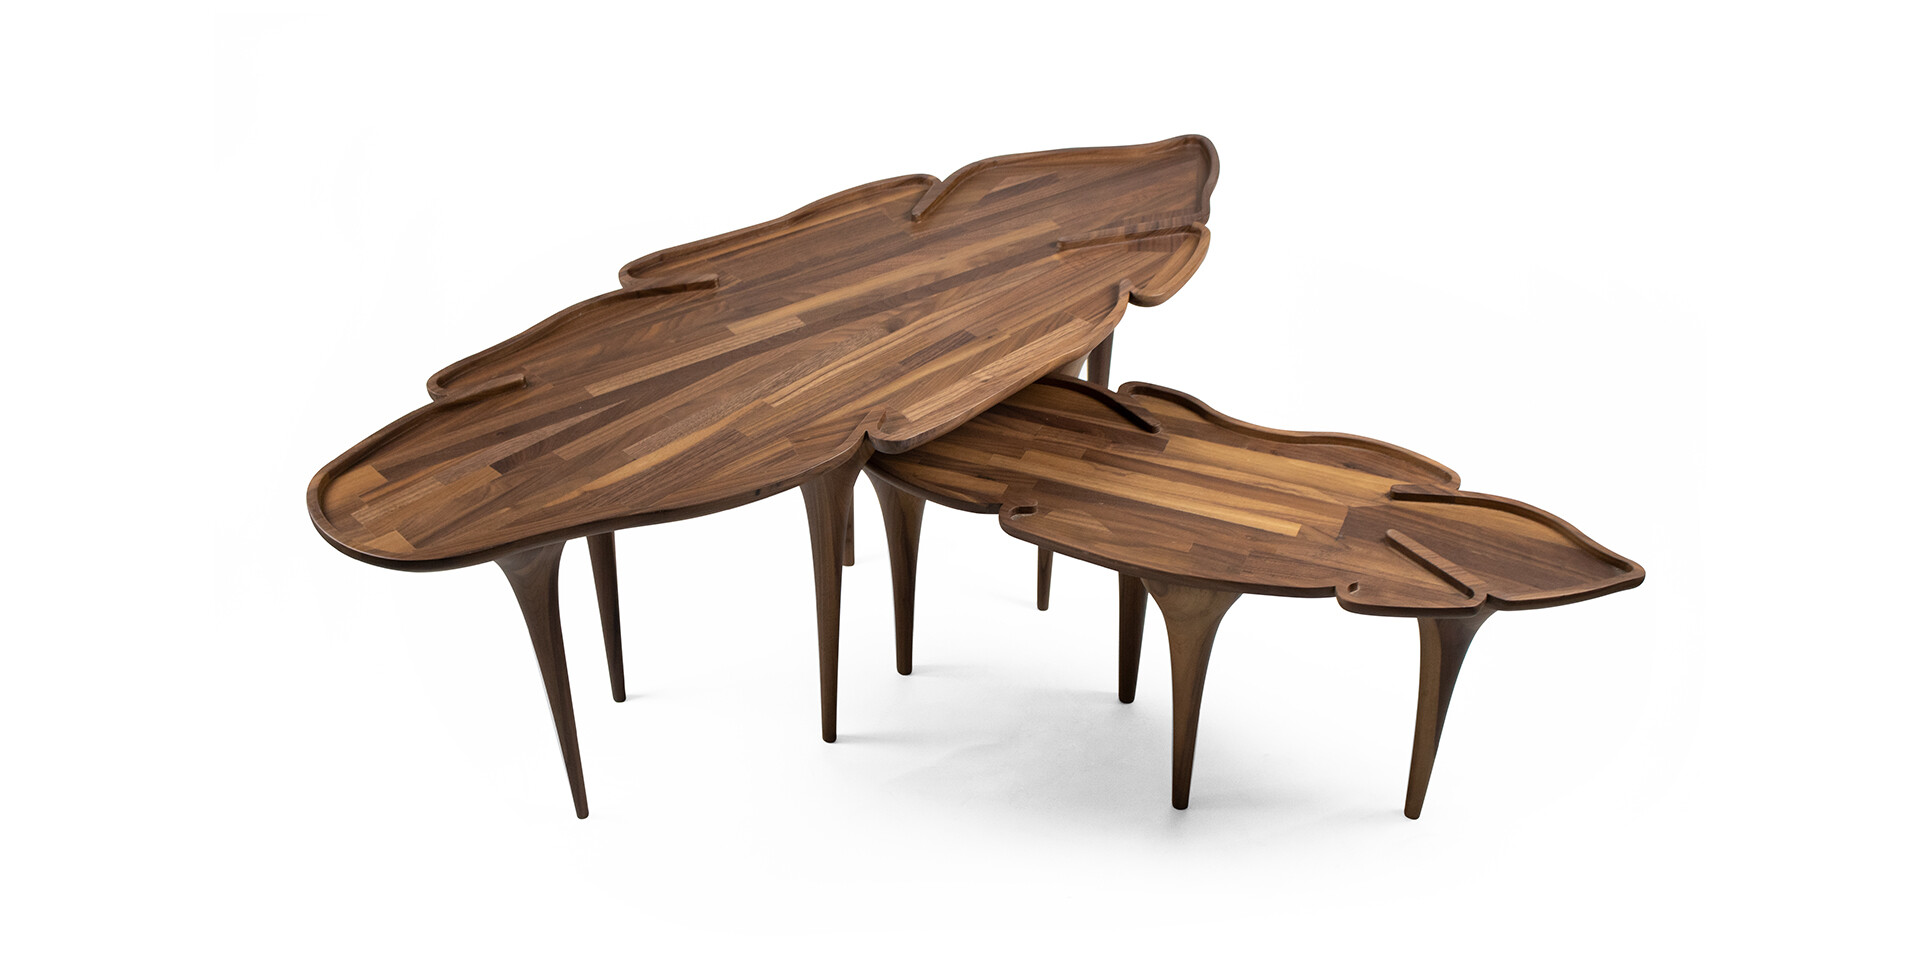 KOROWAI COFFEE TABLE detail other top side view ALMA de LUCE